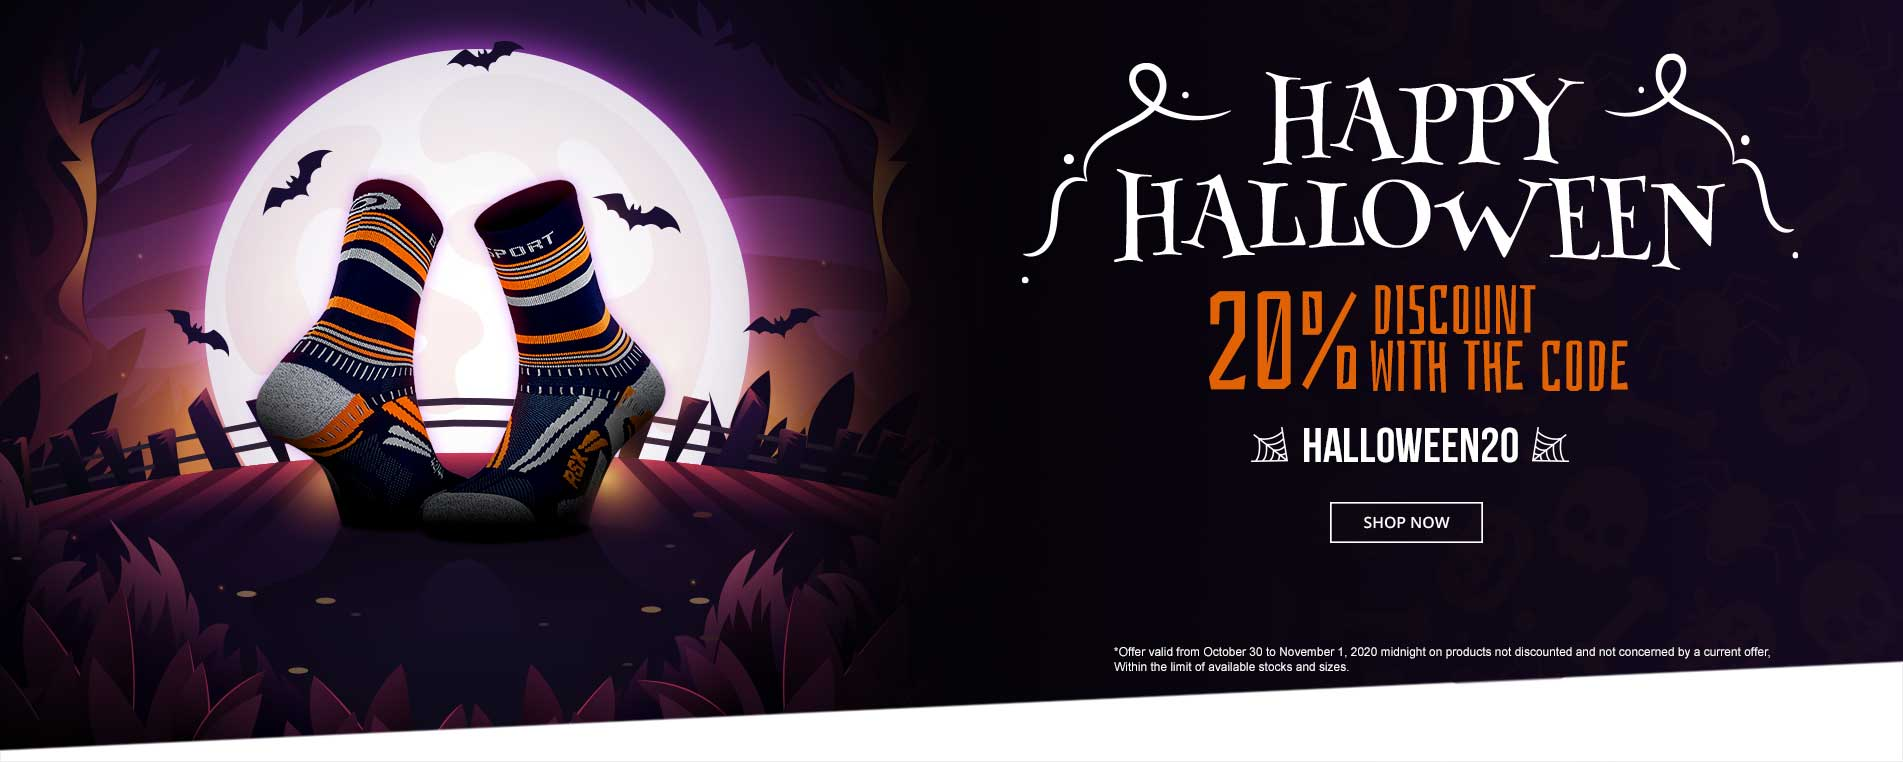 Halloween: Trick or treat! Take advantage of our terrifying to equip yourself for your workouts or your sport at home.